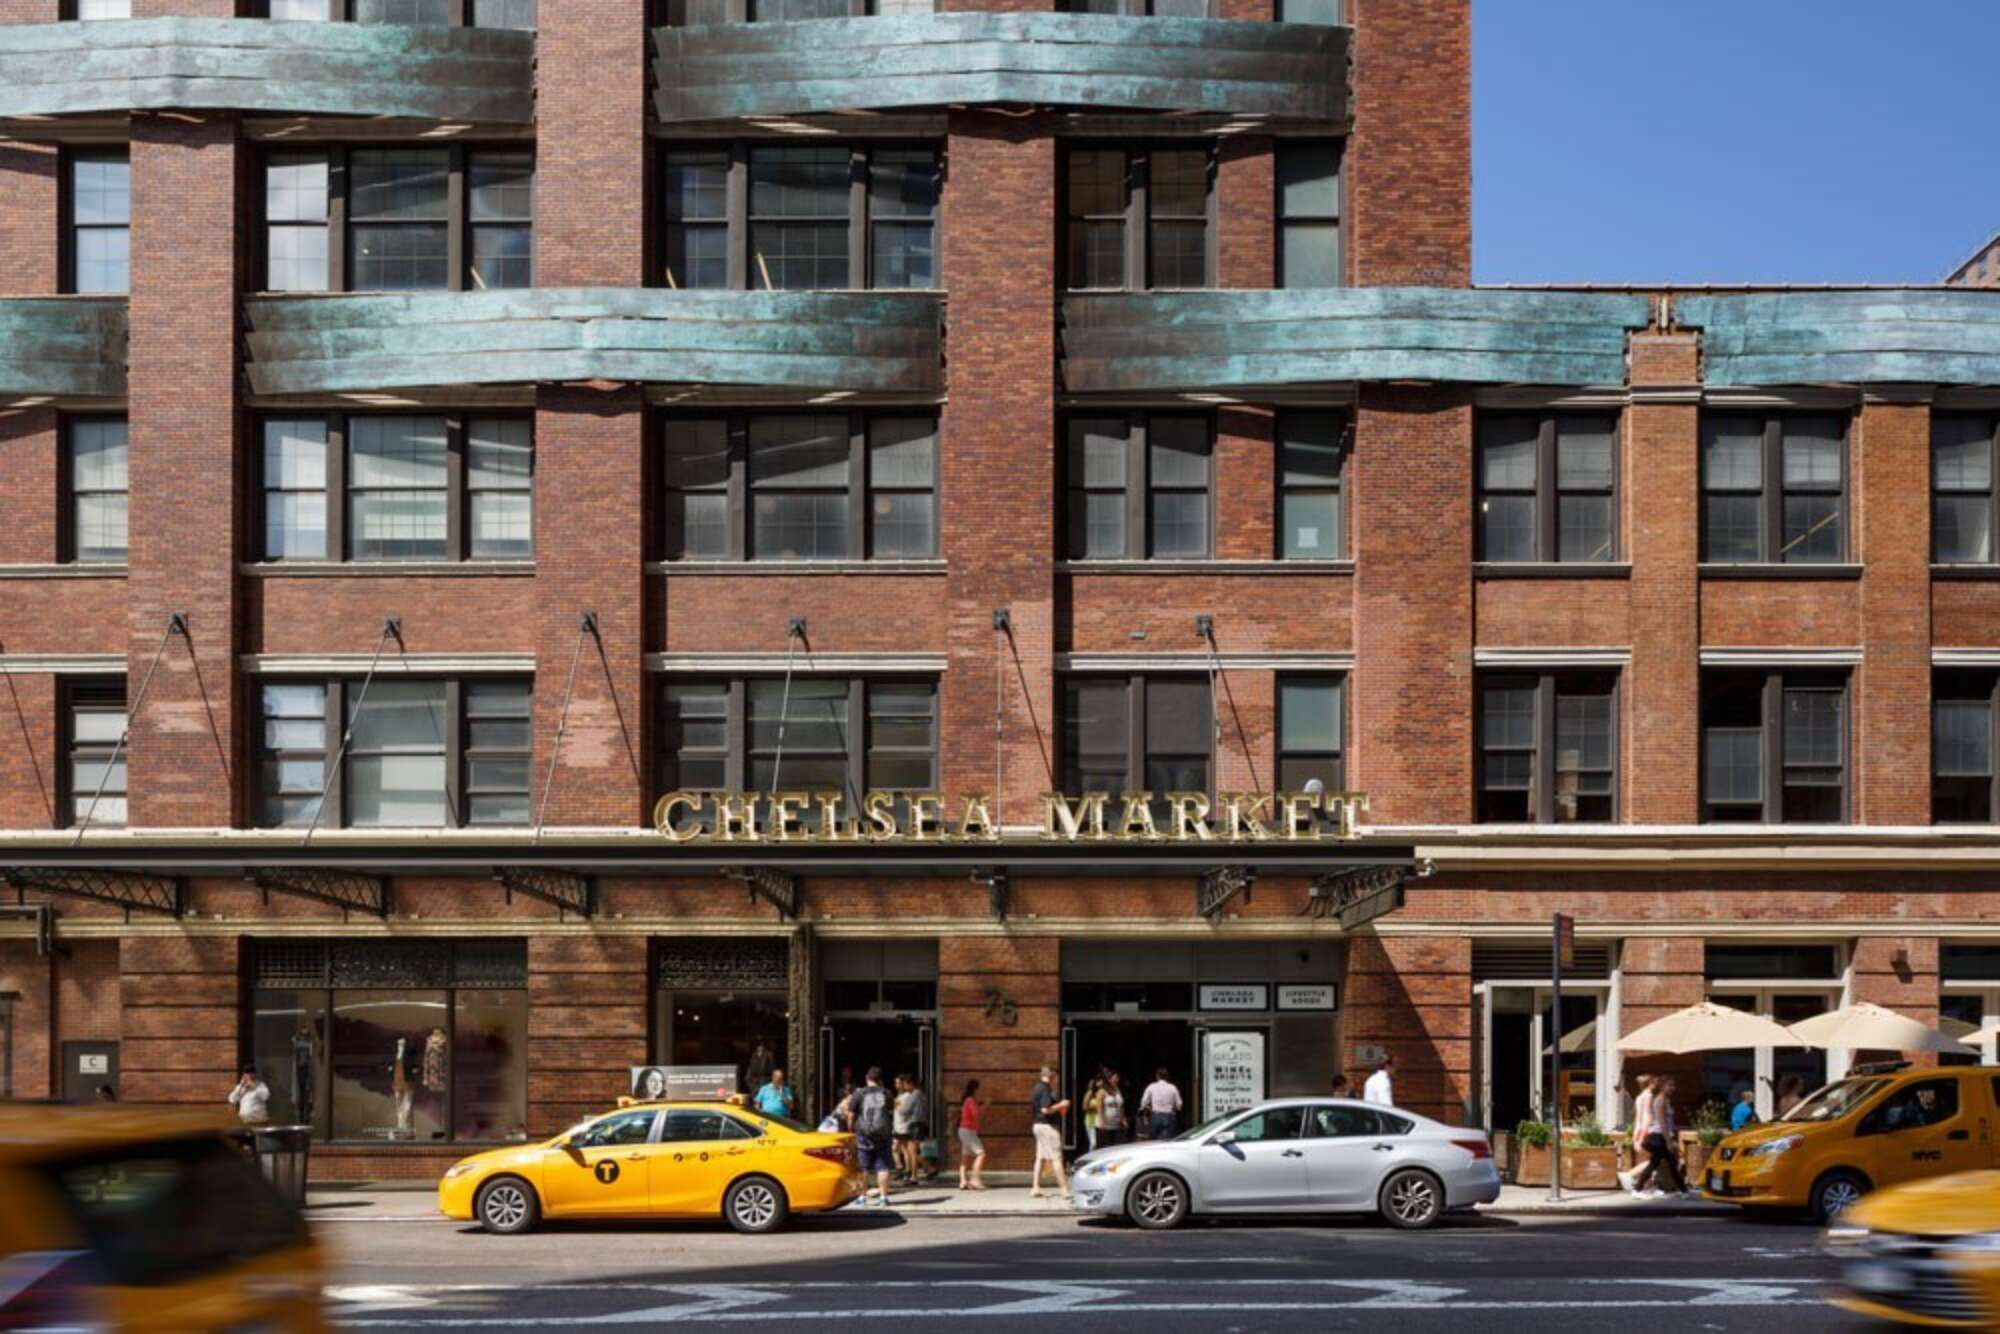 Facade of Chelsea Market with New York City yellow cabs out front